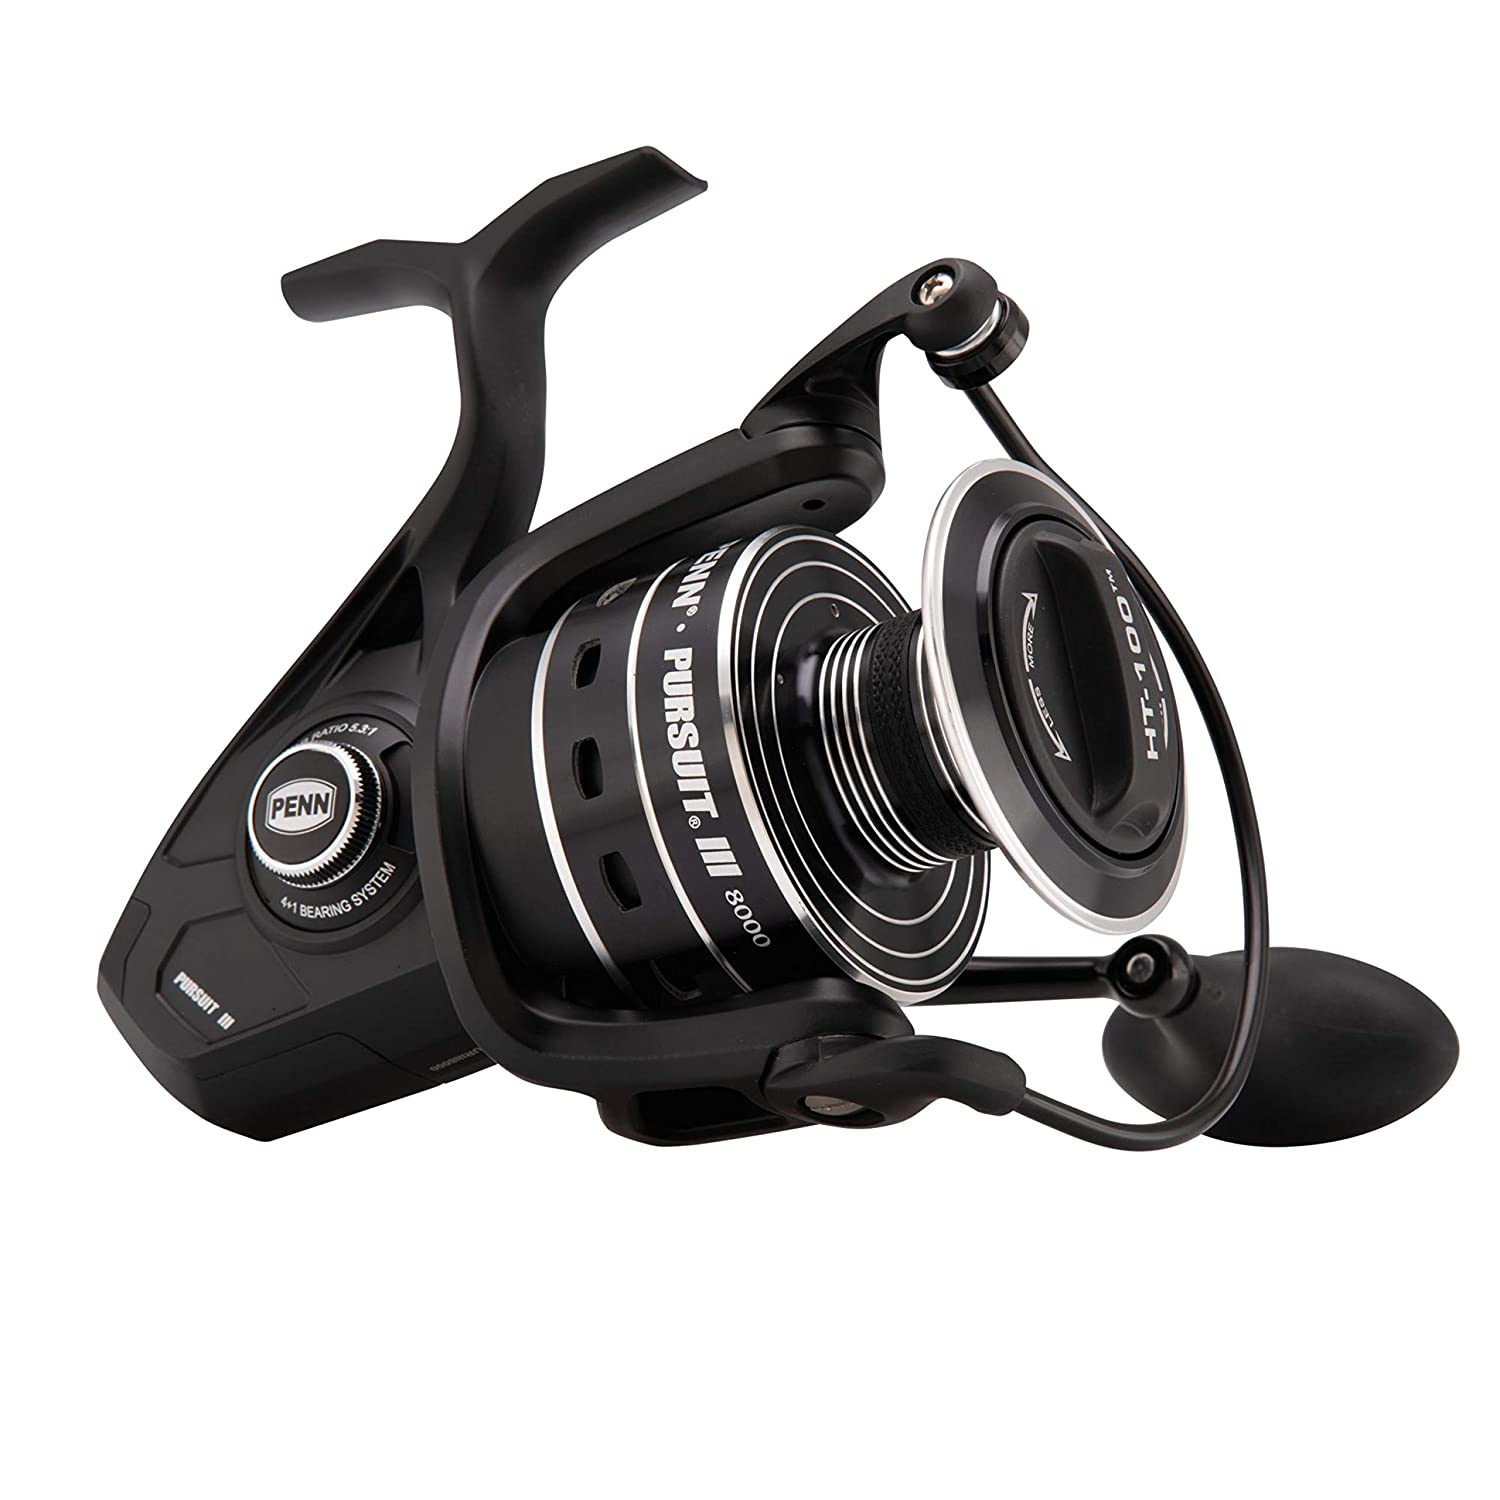 Penn Pursuit III Spinning Fishing Reel, Black Silver, 8000